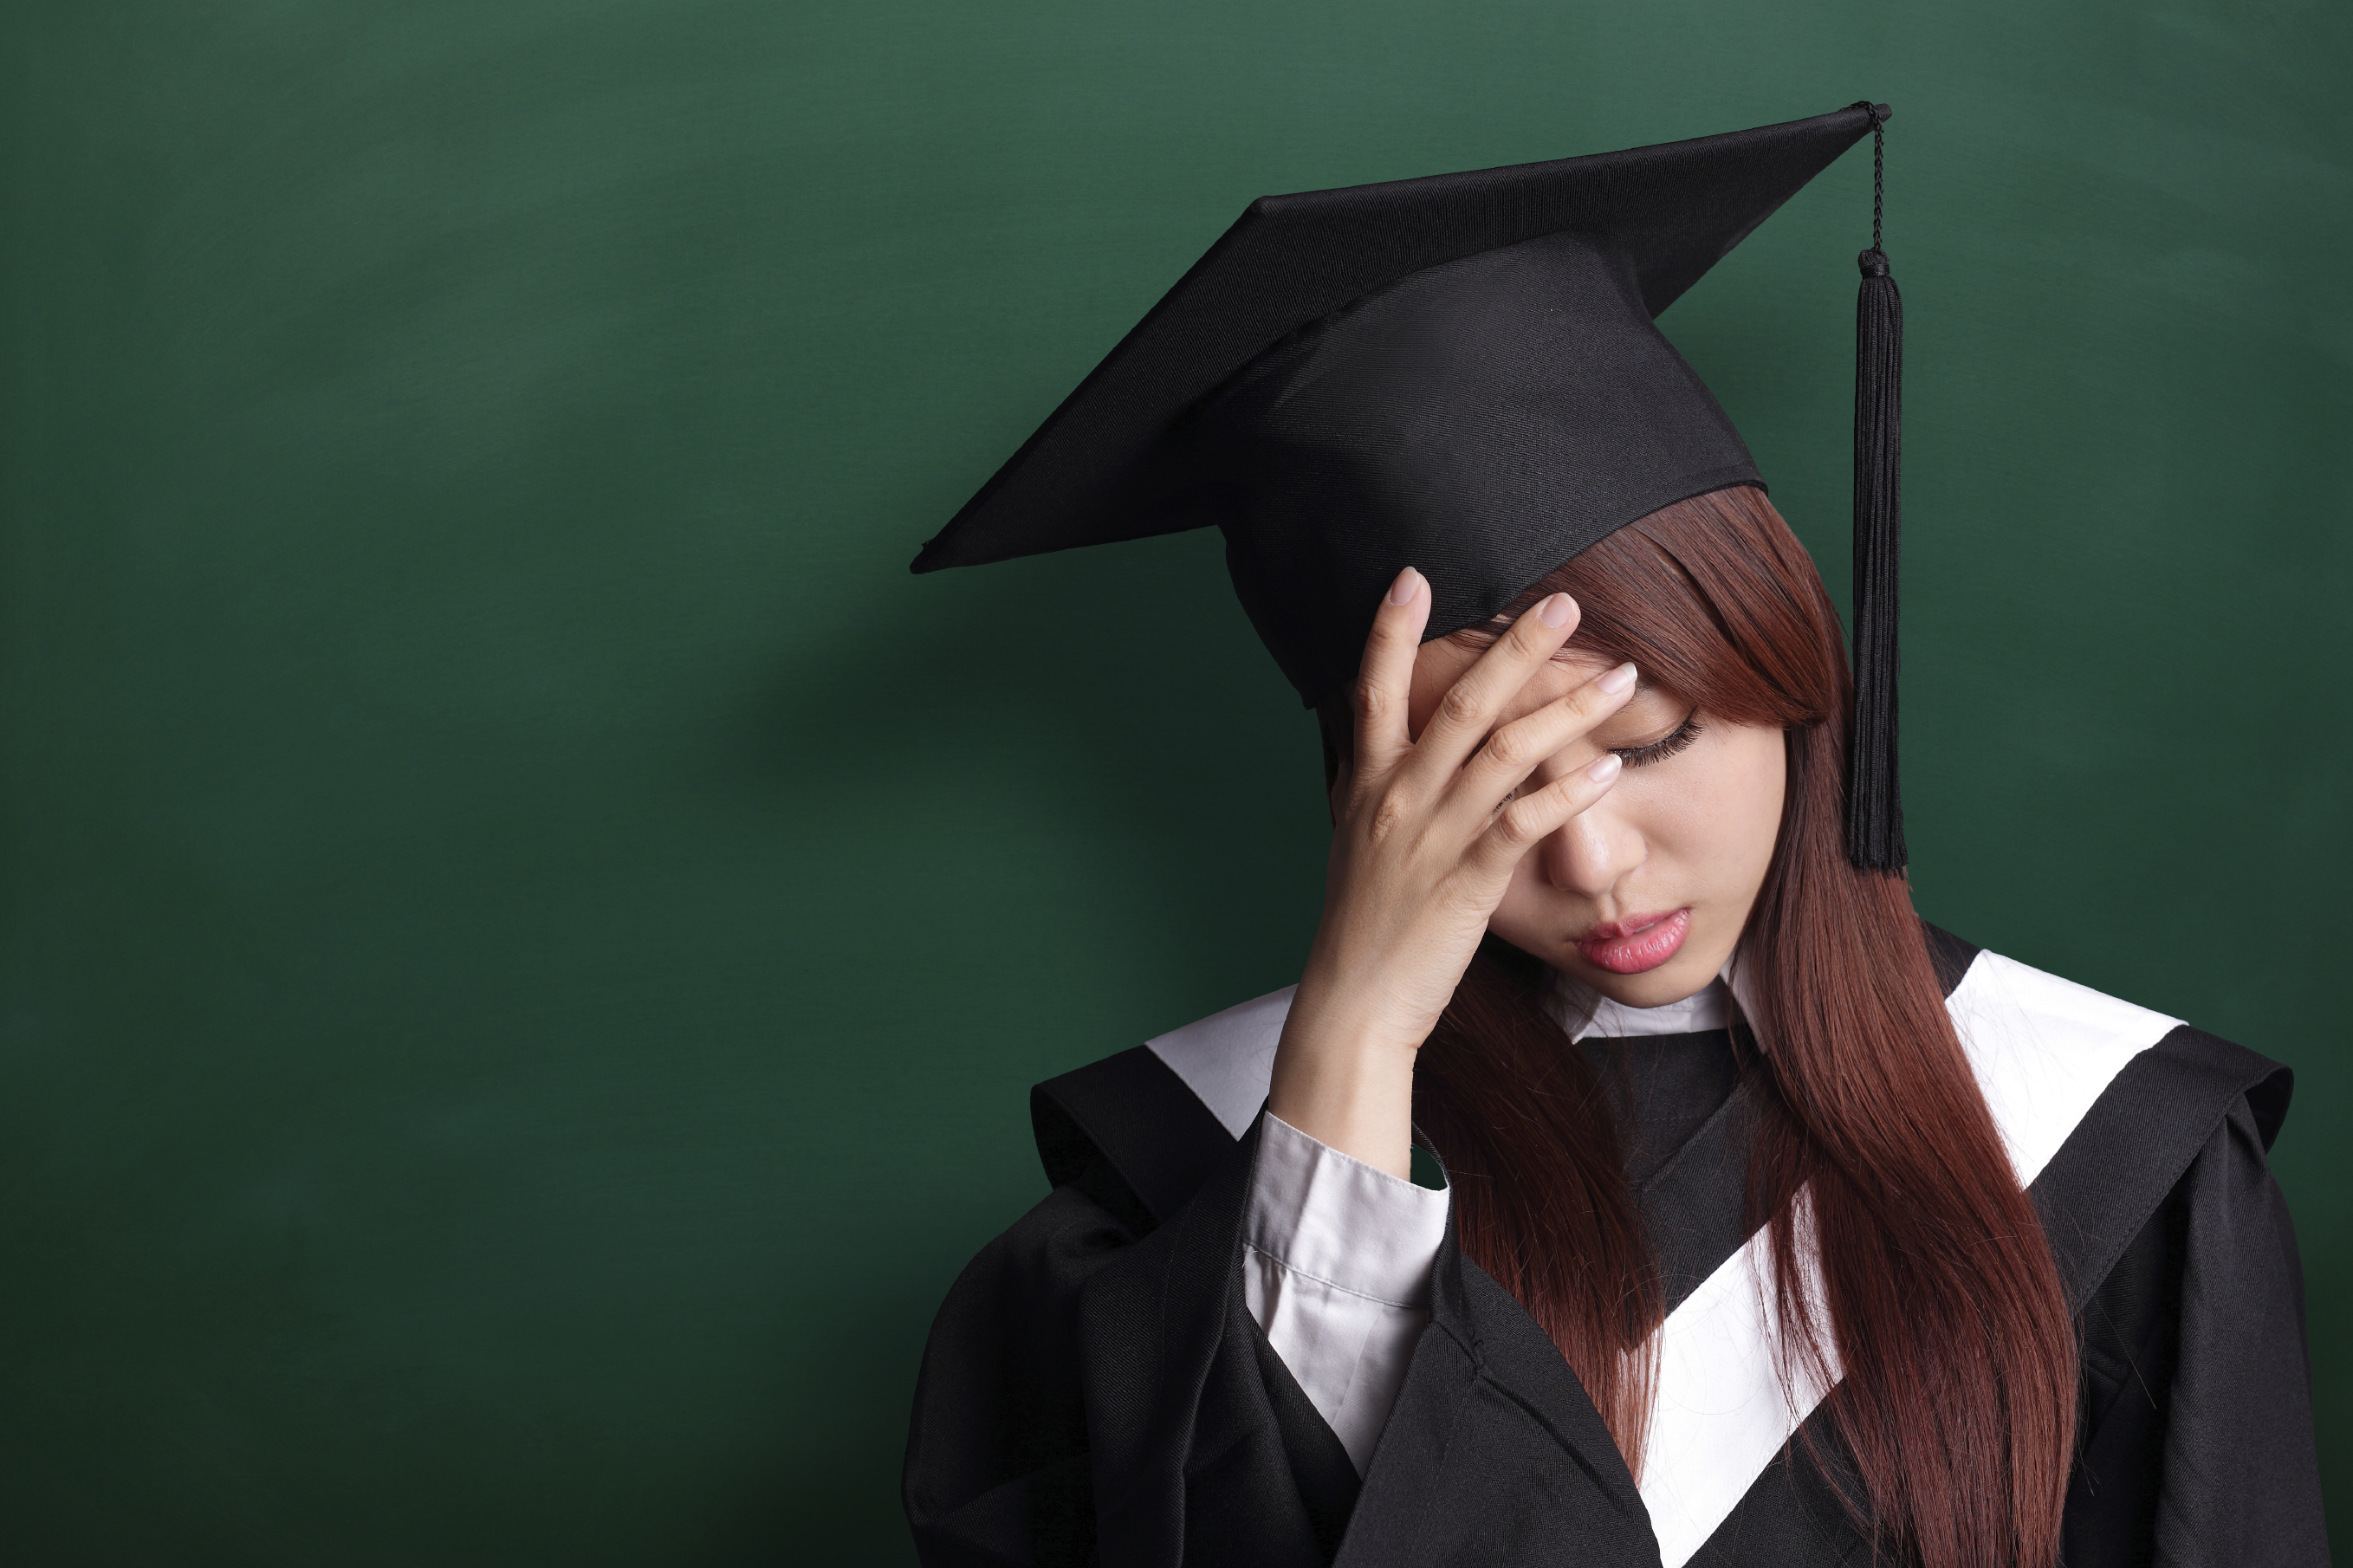 Darkness after the Diploma: 7 Ways to Overcome Post-College Depression